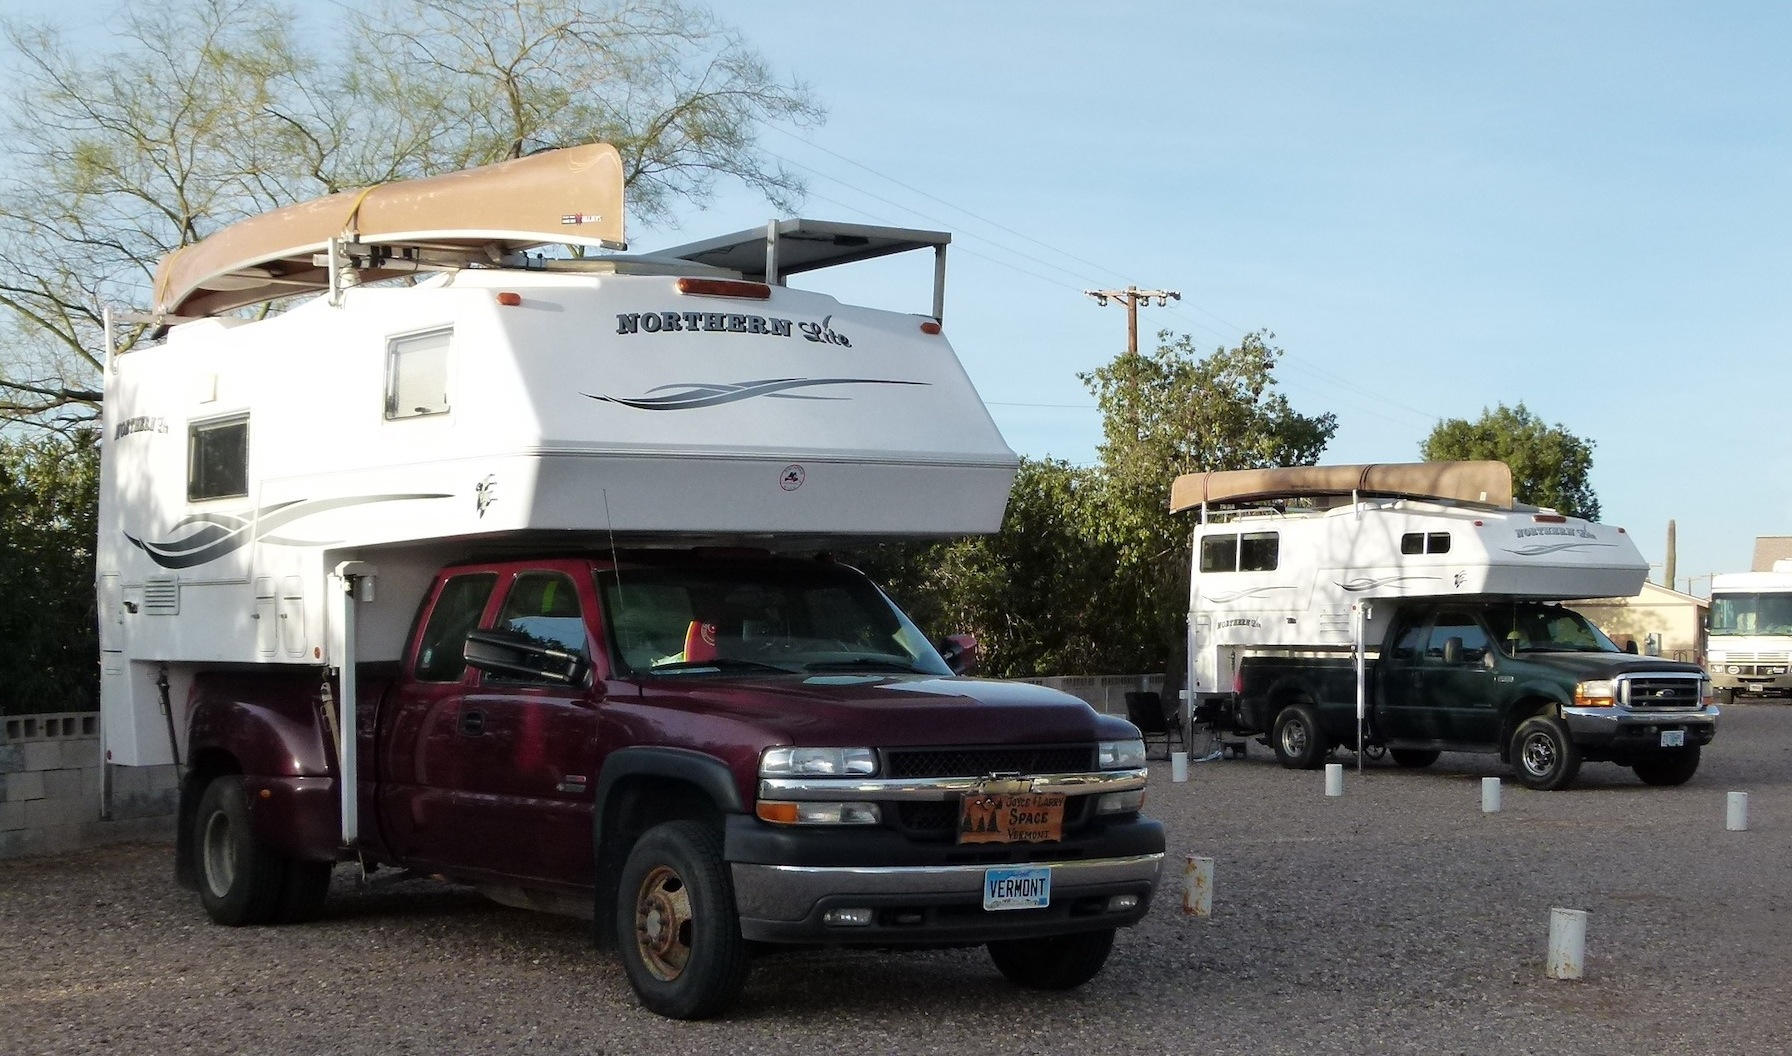 Overnight Dry Camping Stops At Skp Rover S Roost In Casa